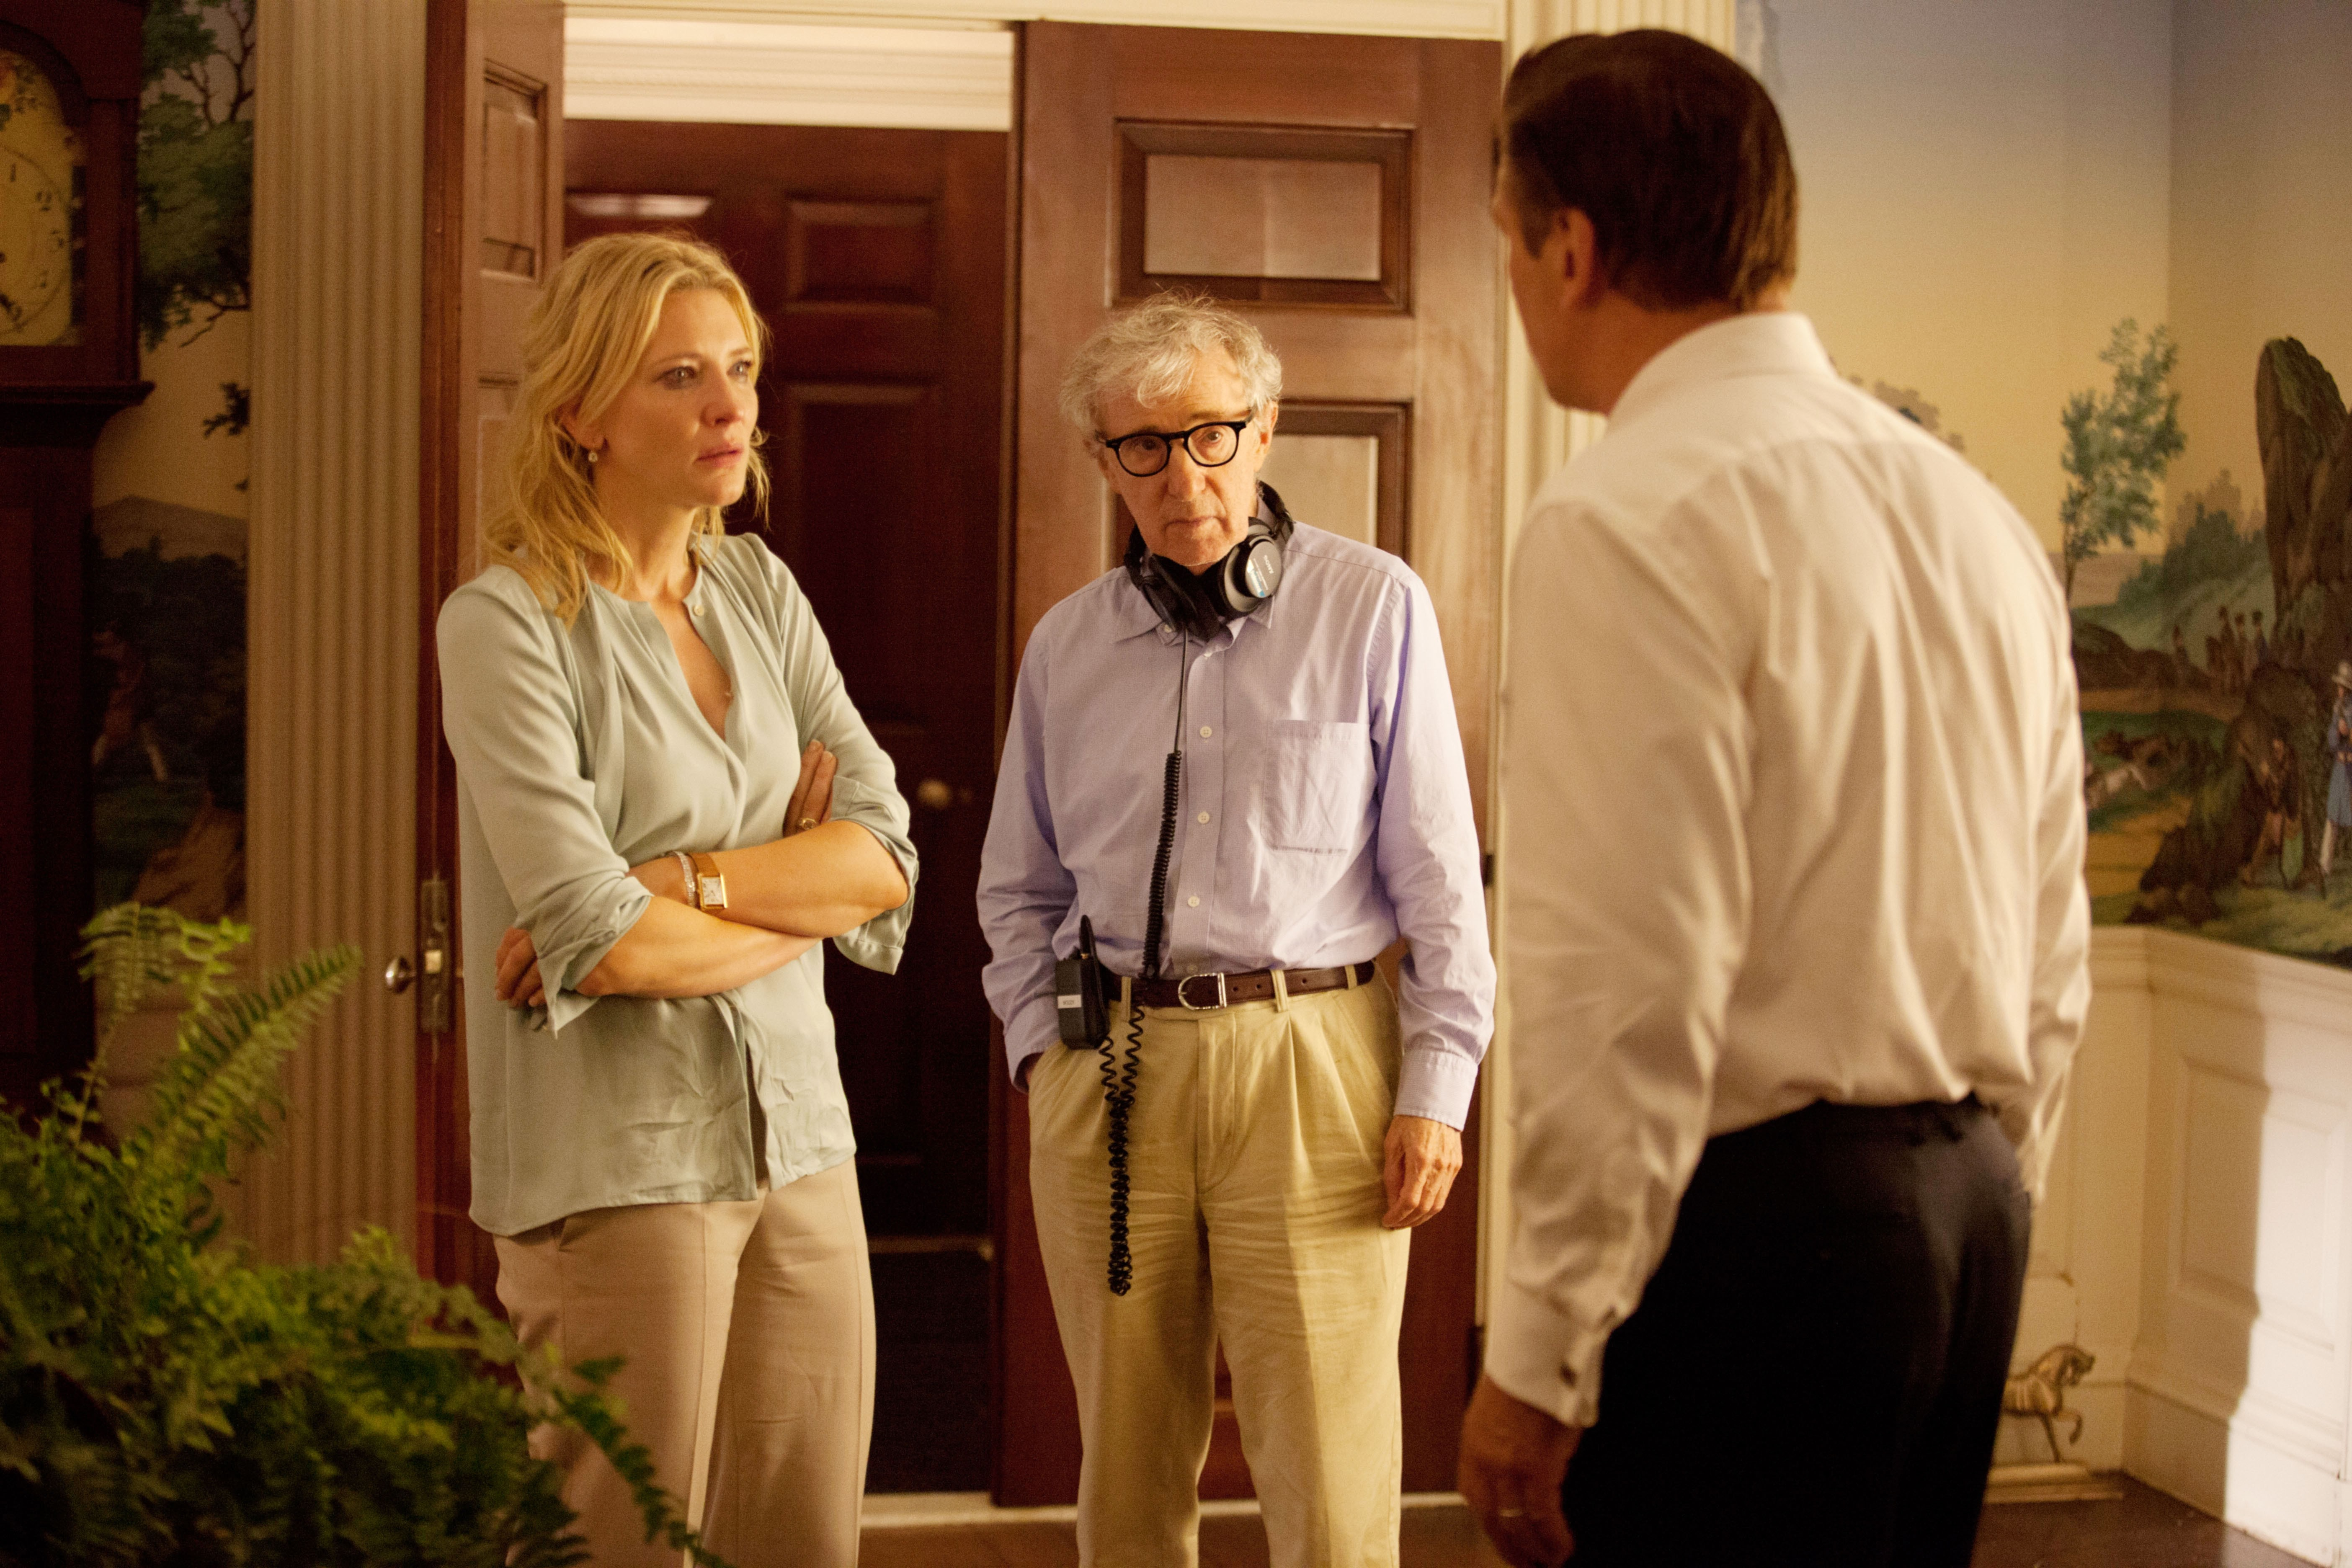 Woody Allen A Career In 20 Hilarious Brilliant Lines Rolling Stone Old Fashioned Fuse Box Best Blue Jasmine Cate Blanchett